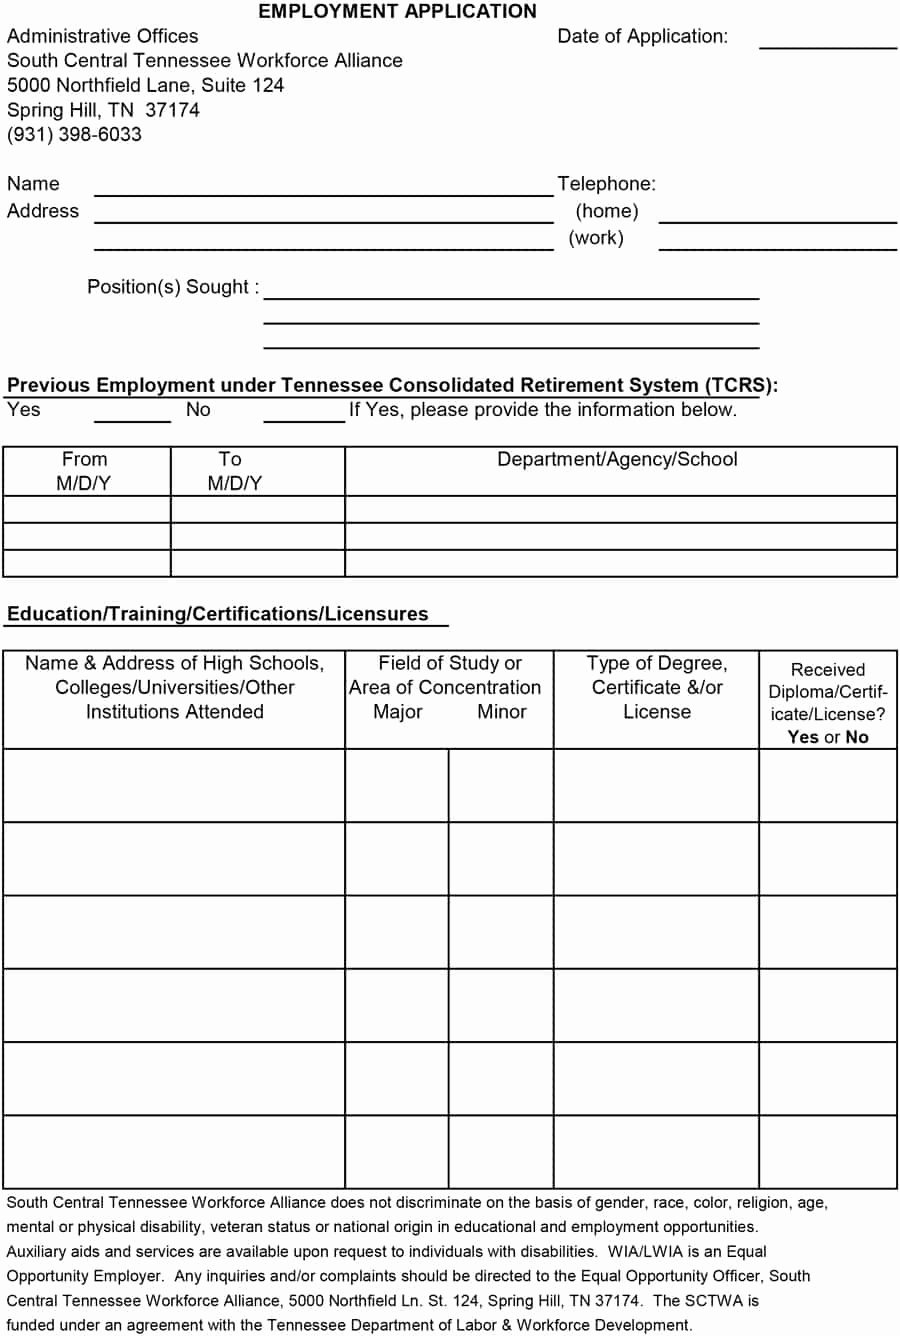 Employment Applications Printable Template New 50 Free Employment Job Application form Templates